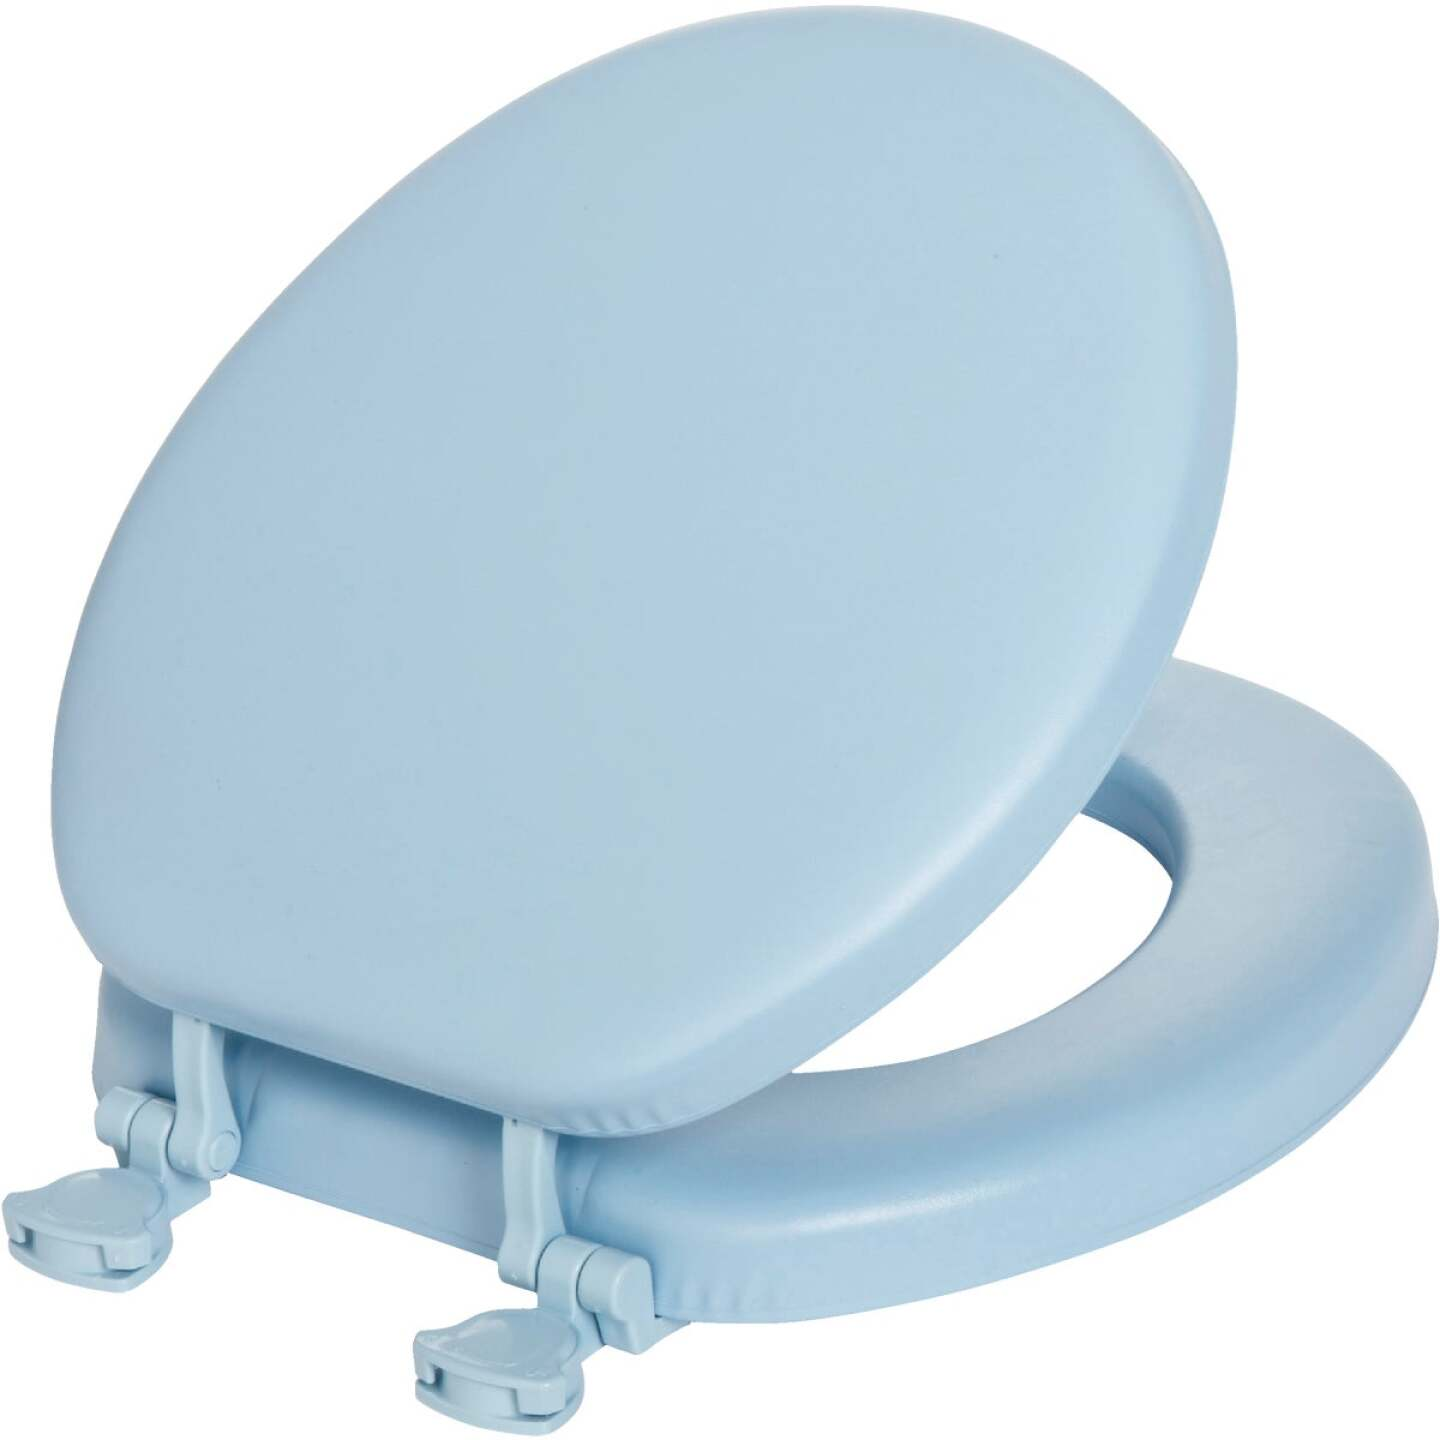 Mayfair Round Closed Front Premium Soft Sky Blue Toilet Seat Image 1